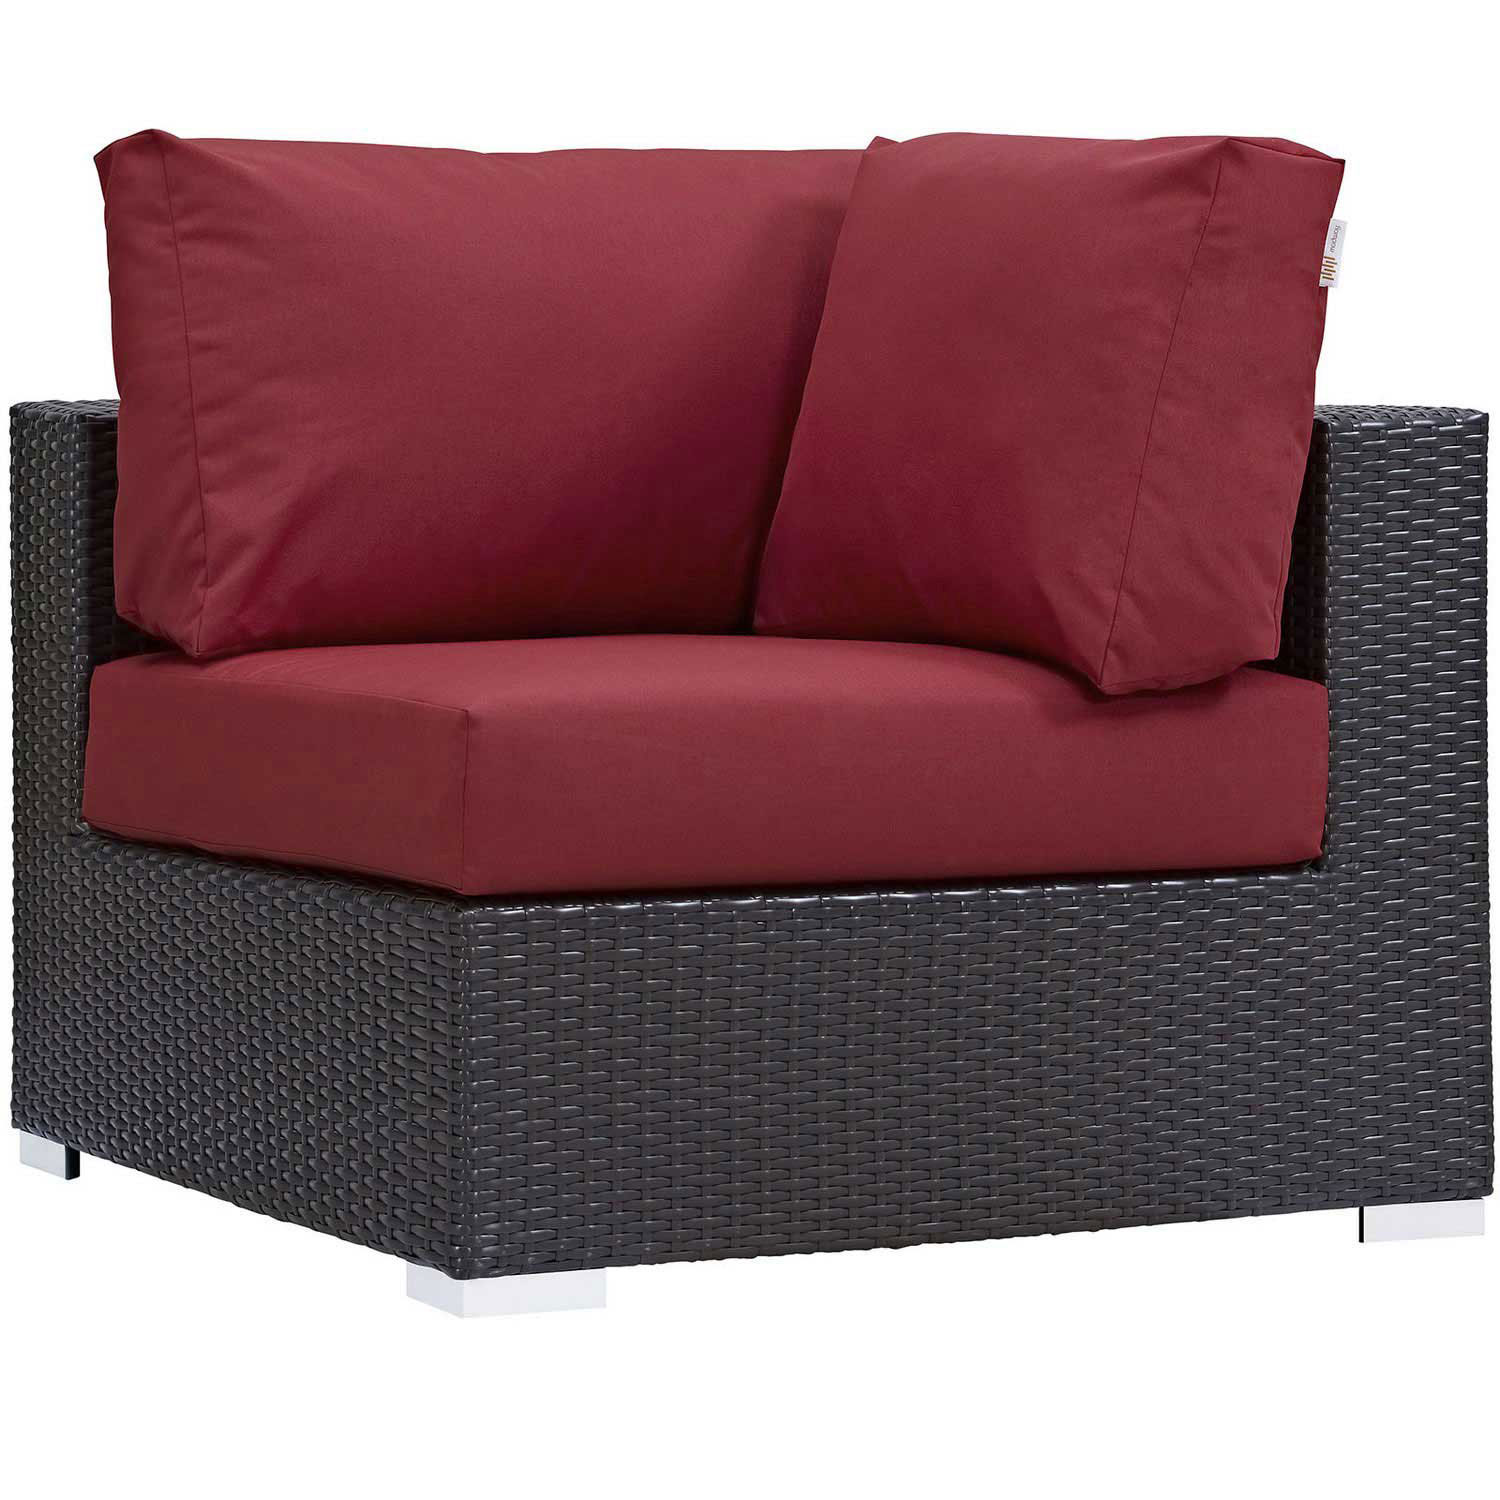 Modway Convene Outdoor Patio Corner - Espresso Red